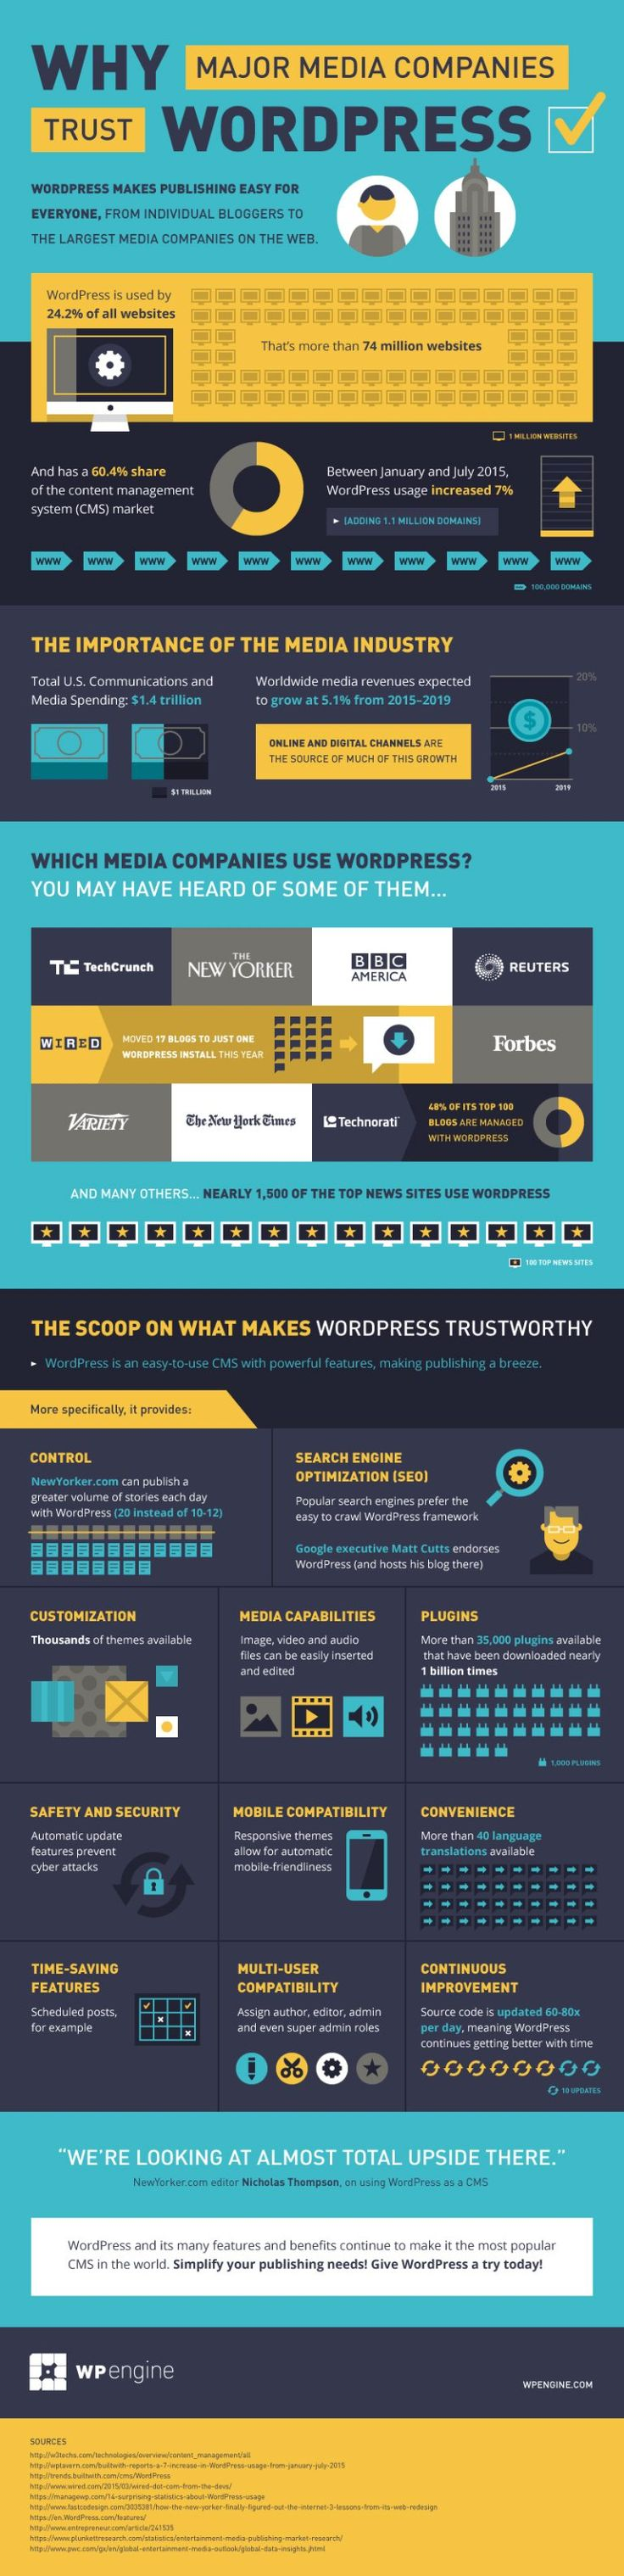 11 Reasons Why Major Companies Trust WordPress [Infographic]